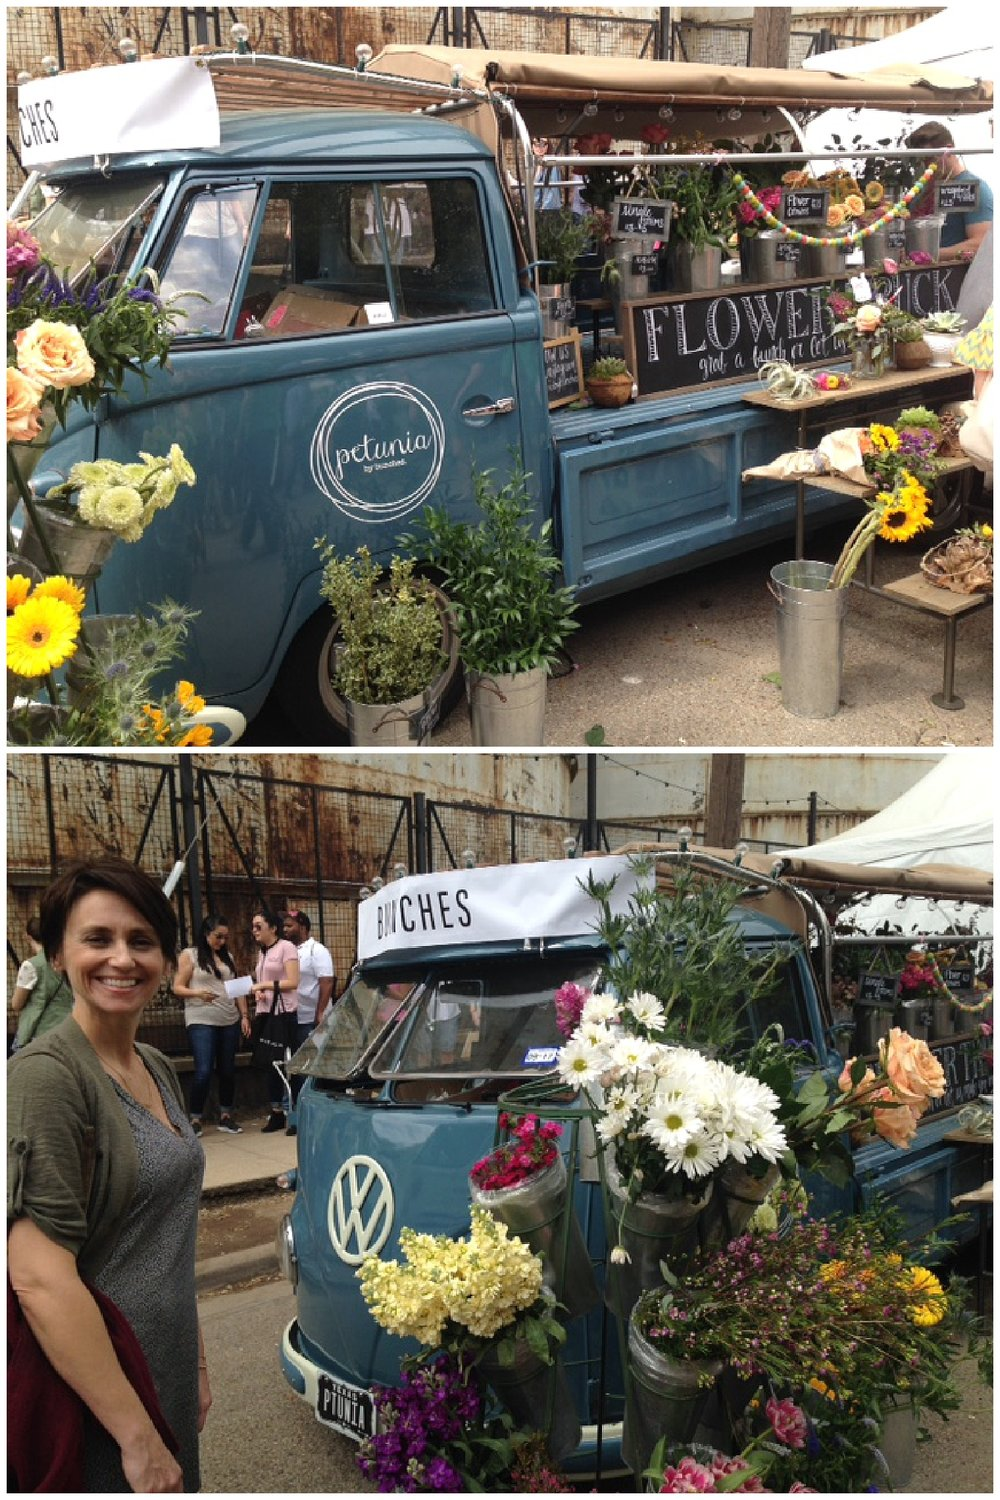 Check out this VW bus/flower cart!  Pretty as a picture.  Who needs a little white tent when you have Petunia the VW minibus?